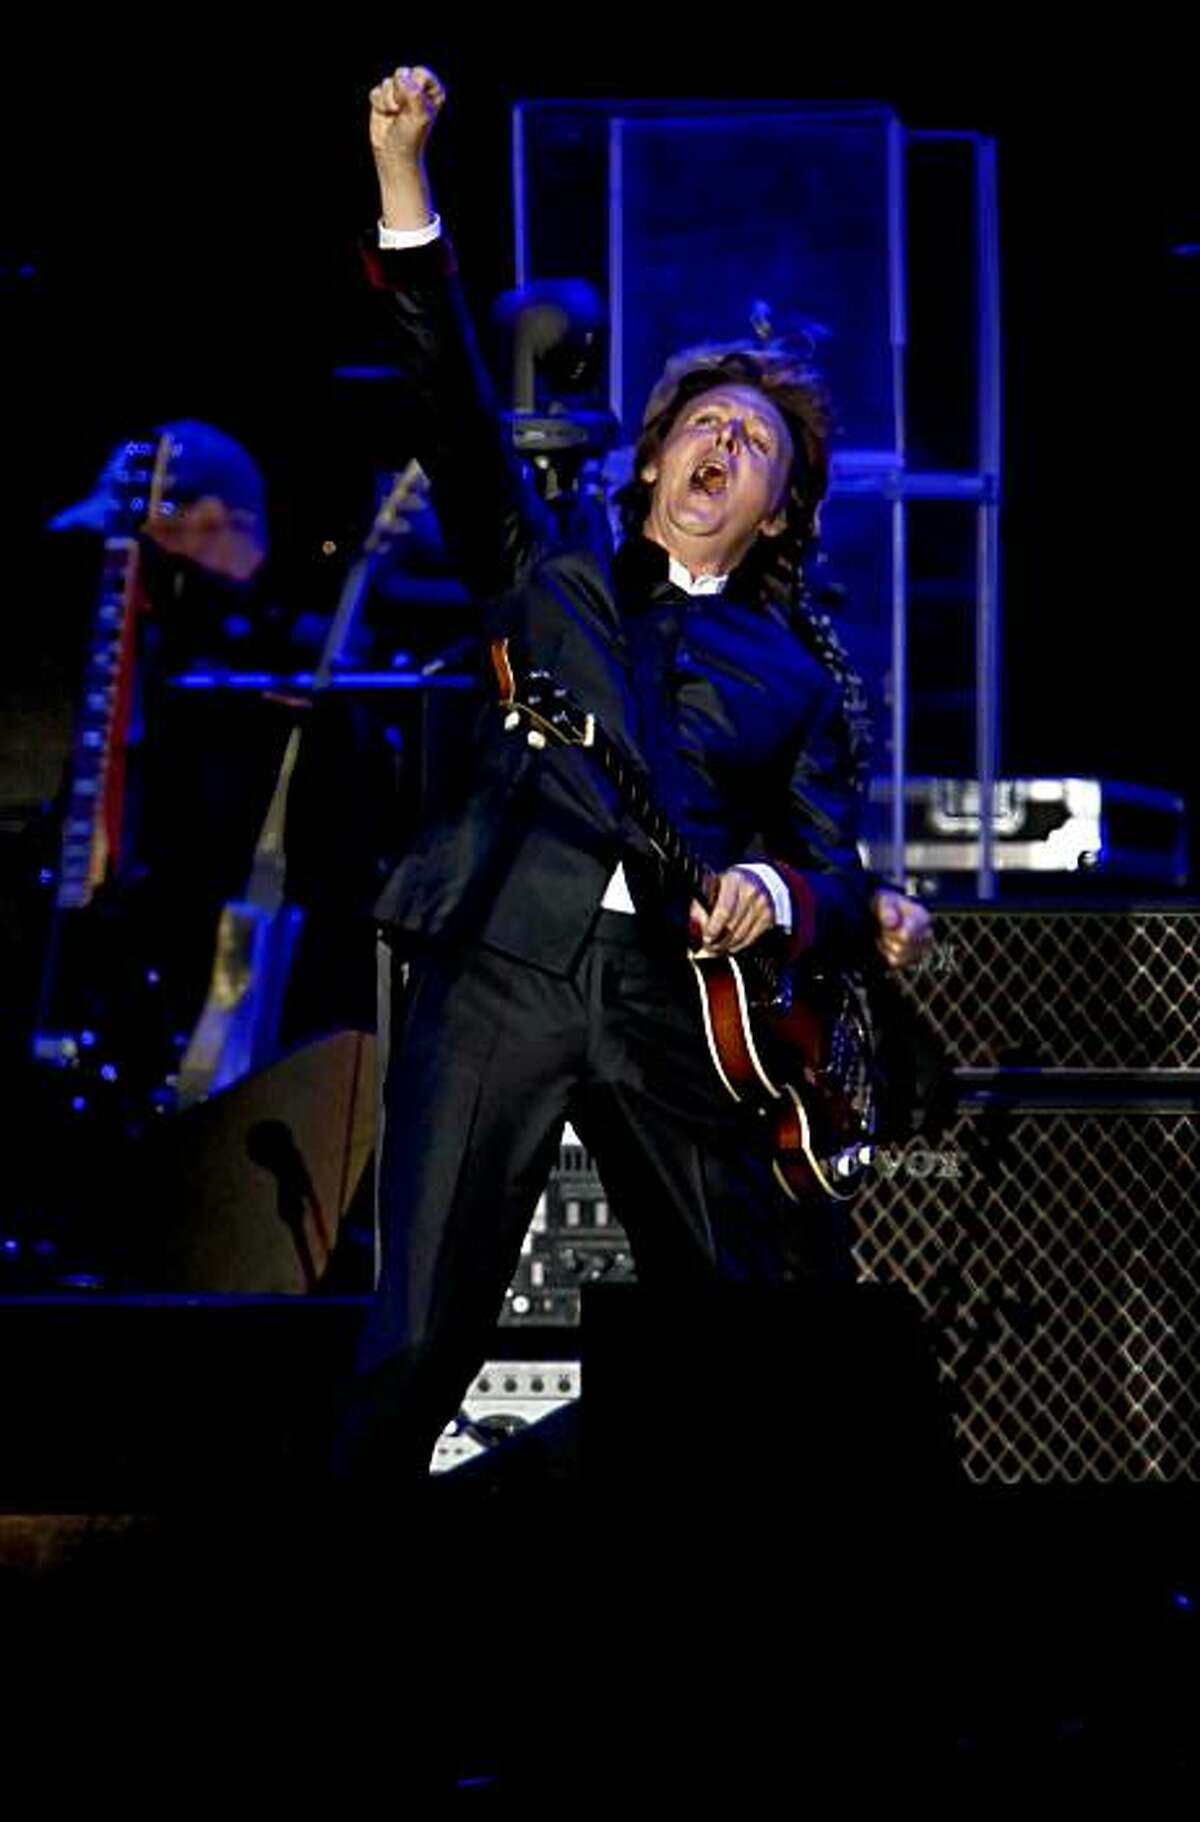 Sir Paul McCartney takes the stage as he plays a sold out show at AT&T Park in San Francisco, Ca. on Saturday July 10, 2010.